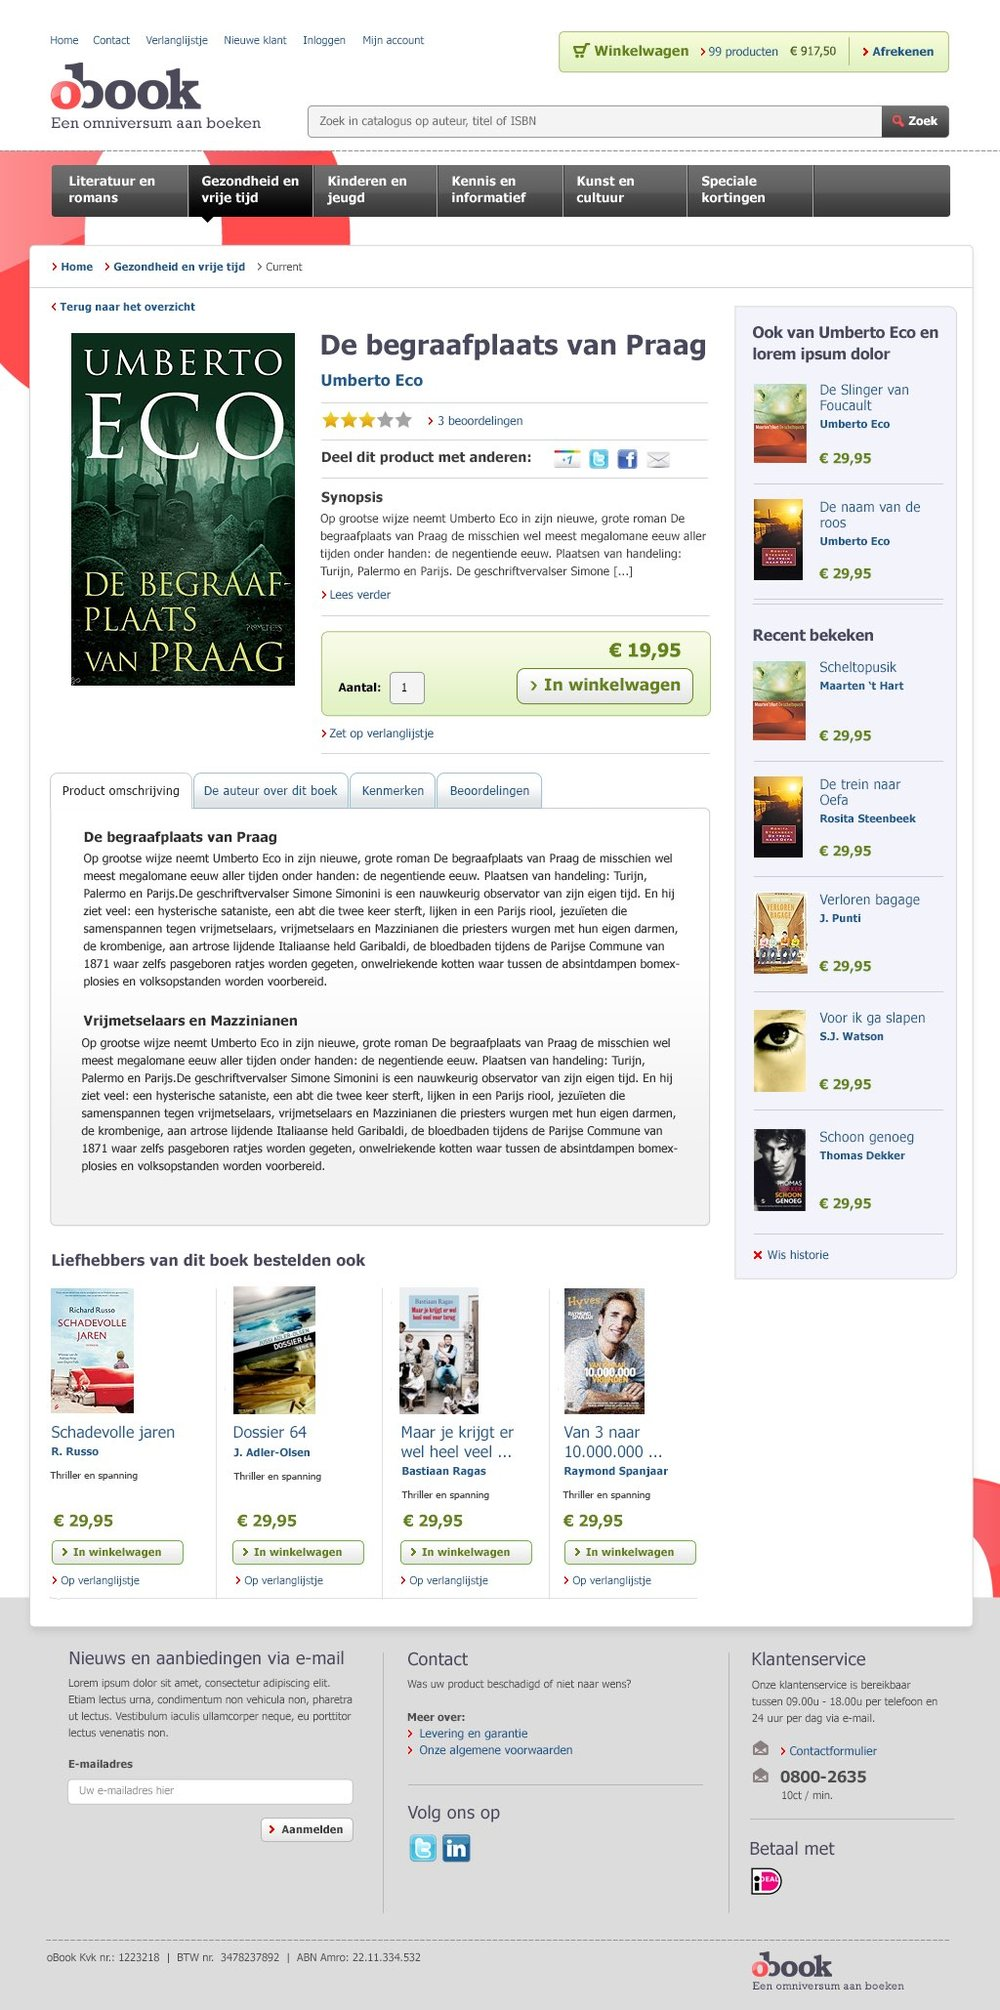 OBOOK.NL E-BOOK WEBSHOP - PRODUCT DETAIL PAGE DESIGN